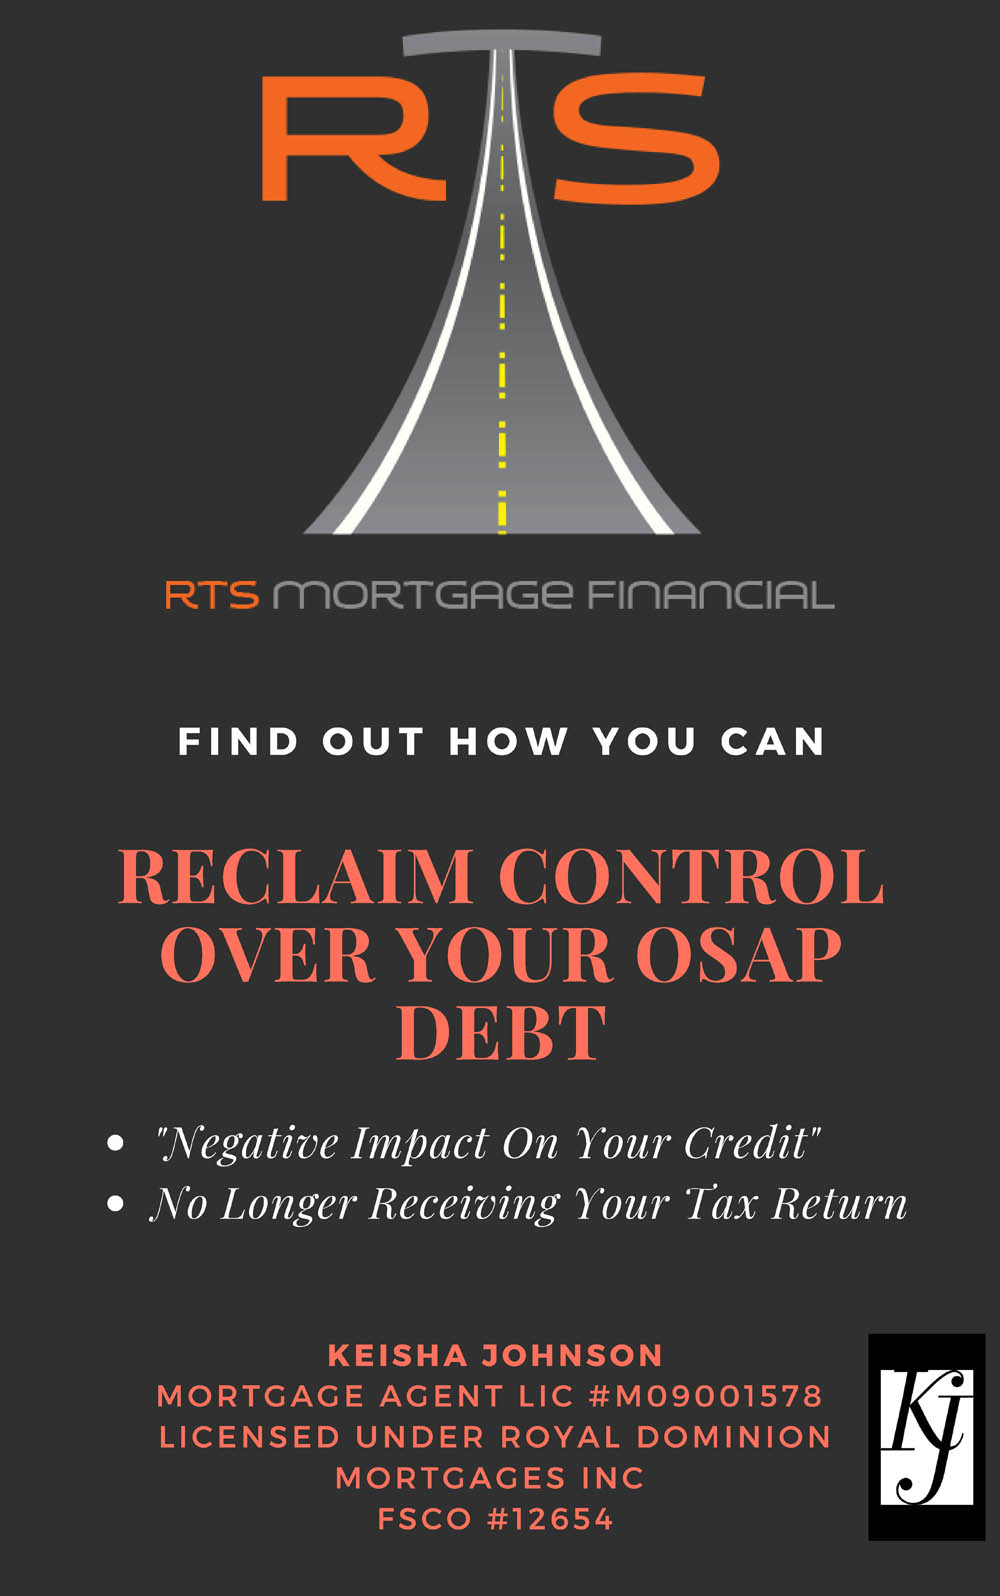 OSAP RECOVERY